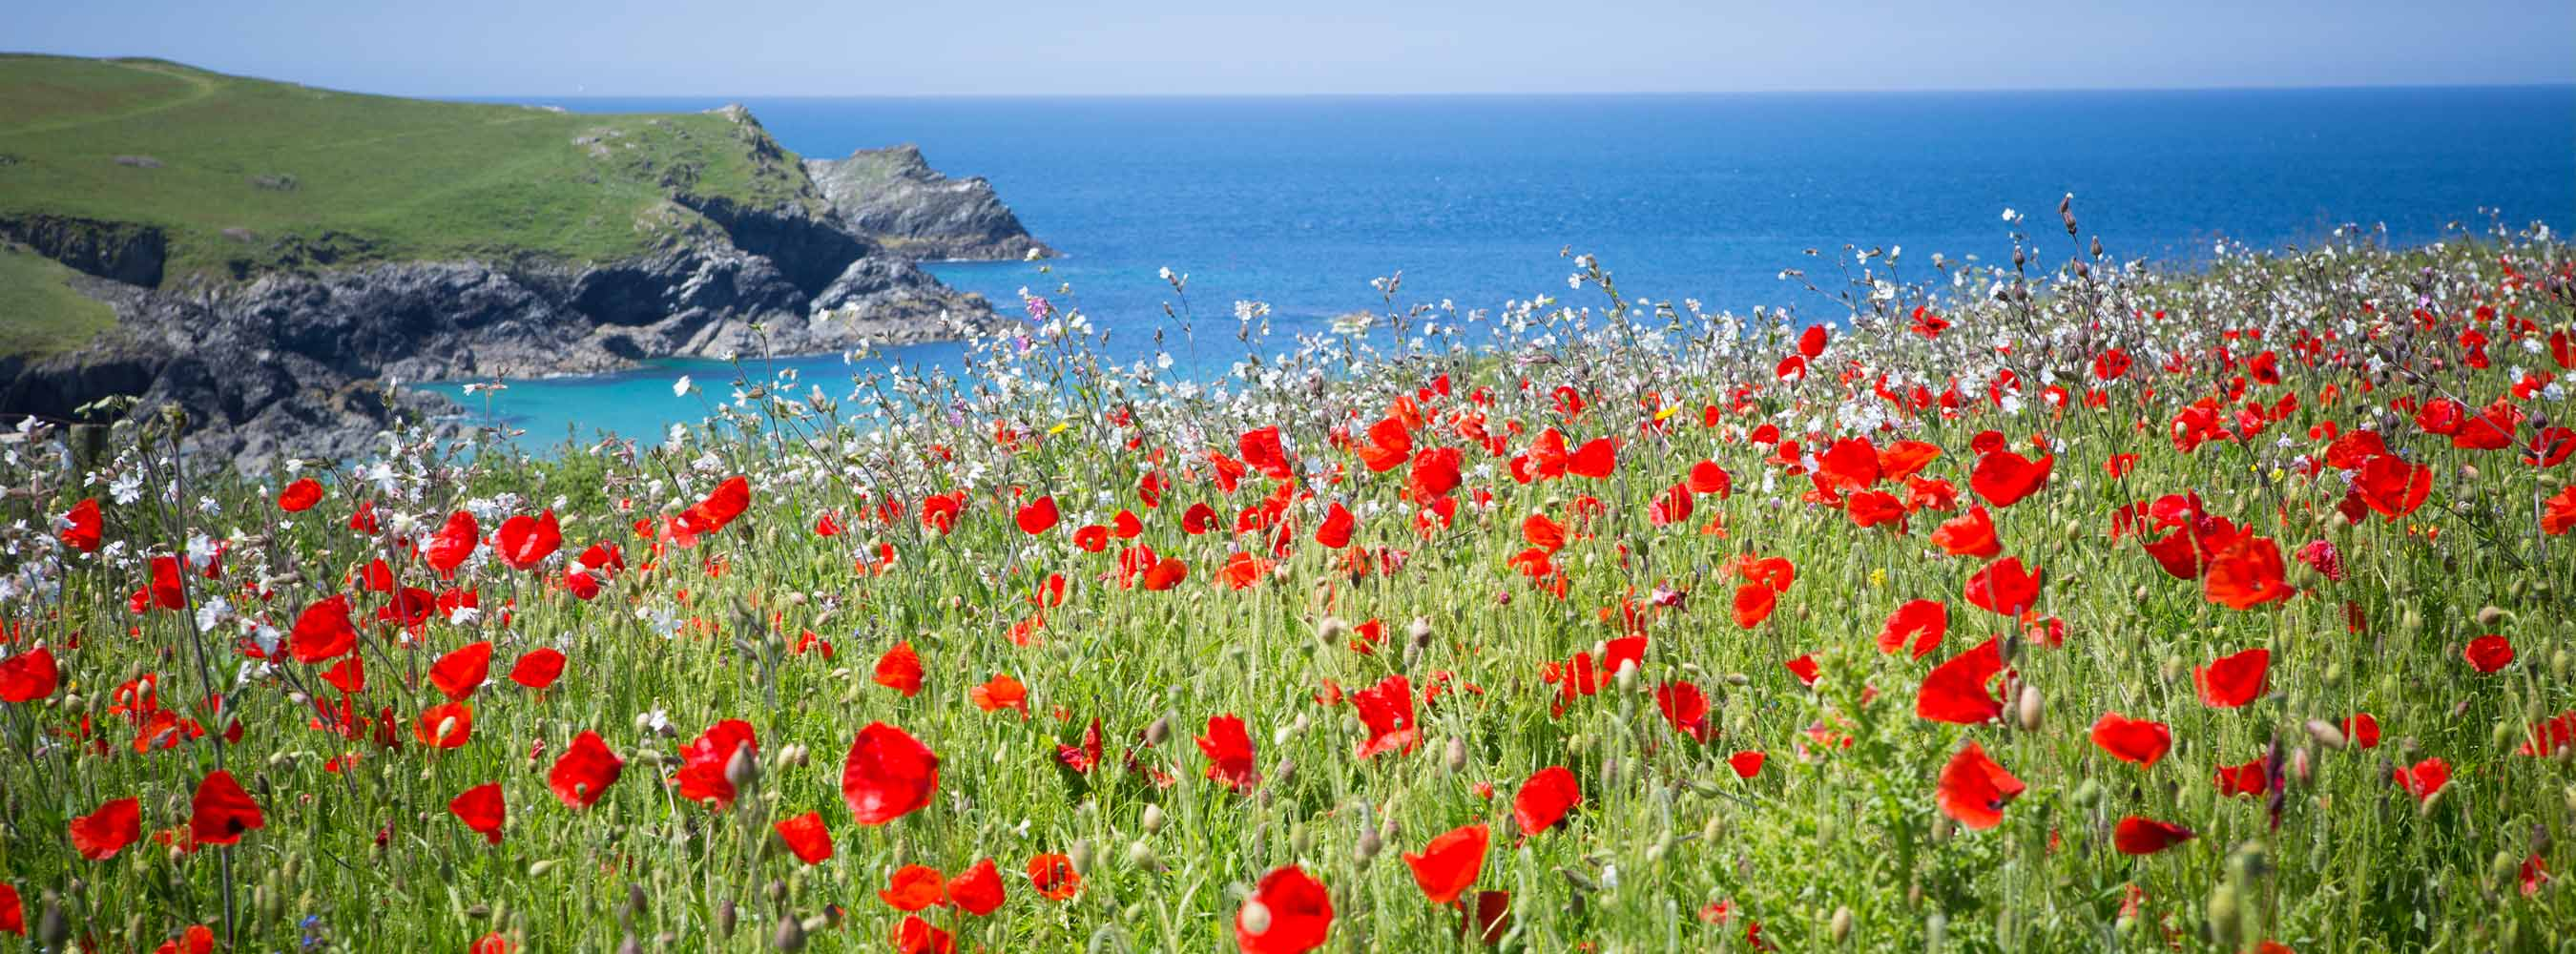 Location Poly Joke Coastal Poppies